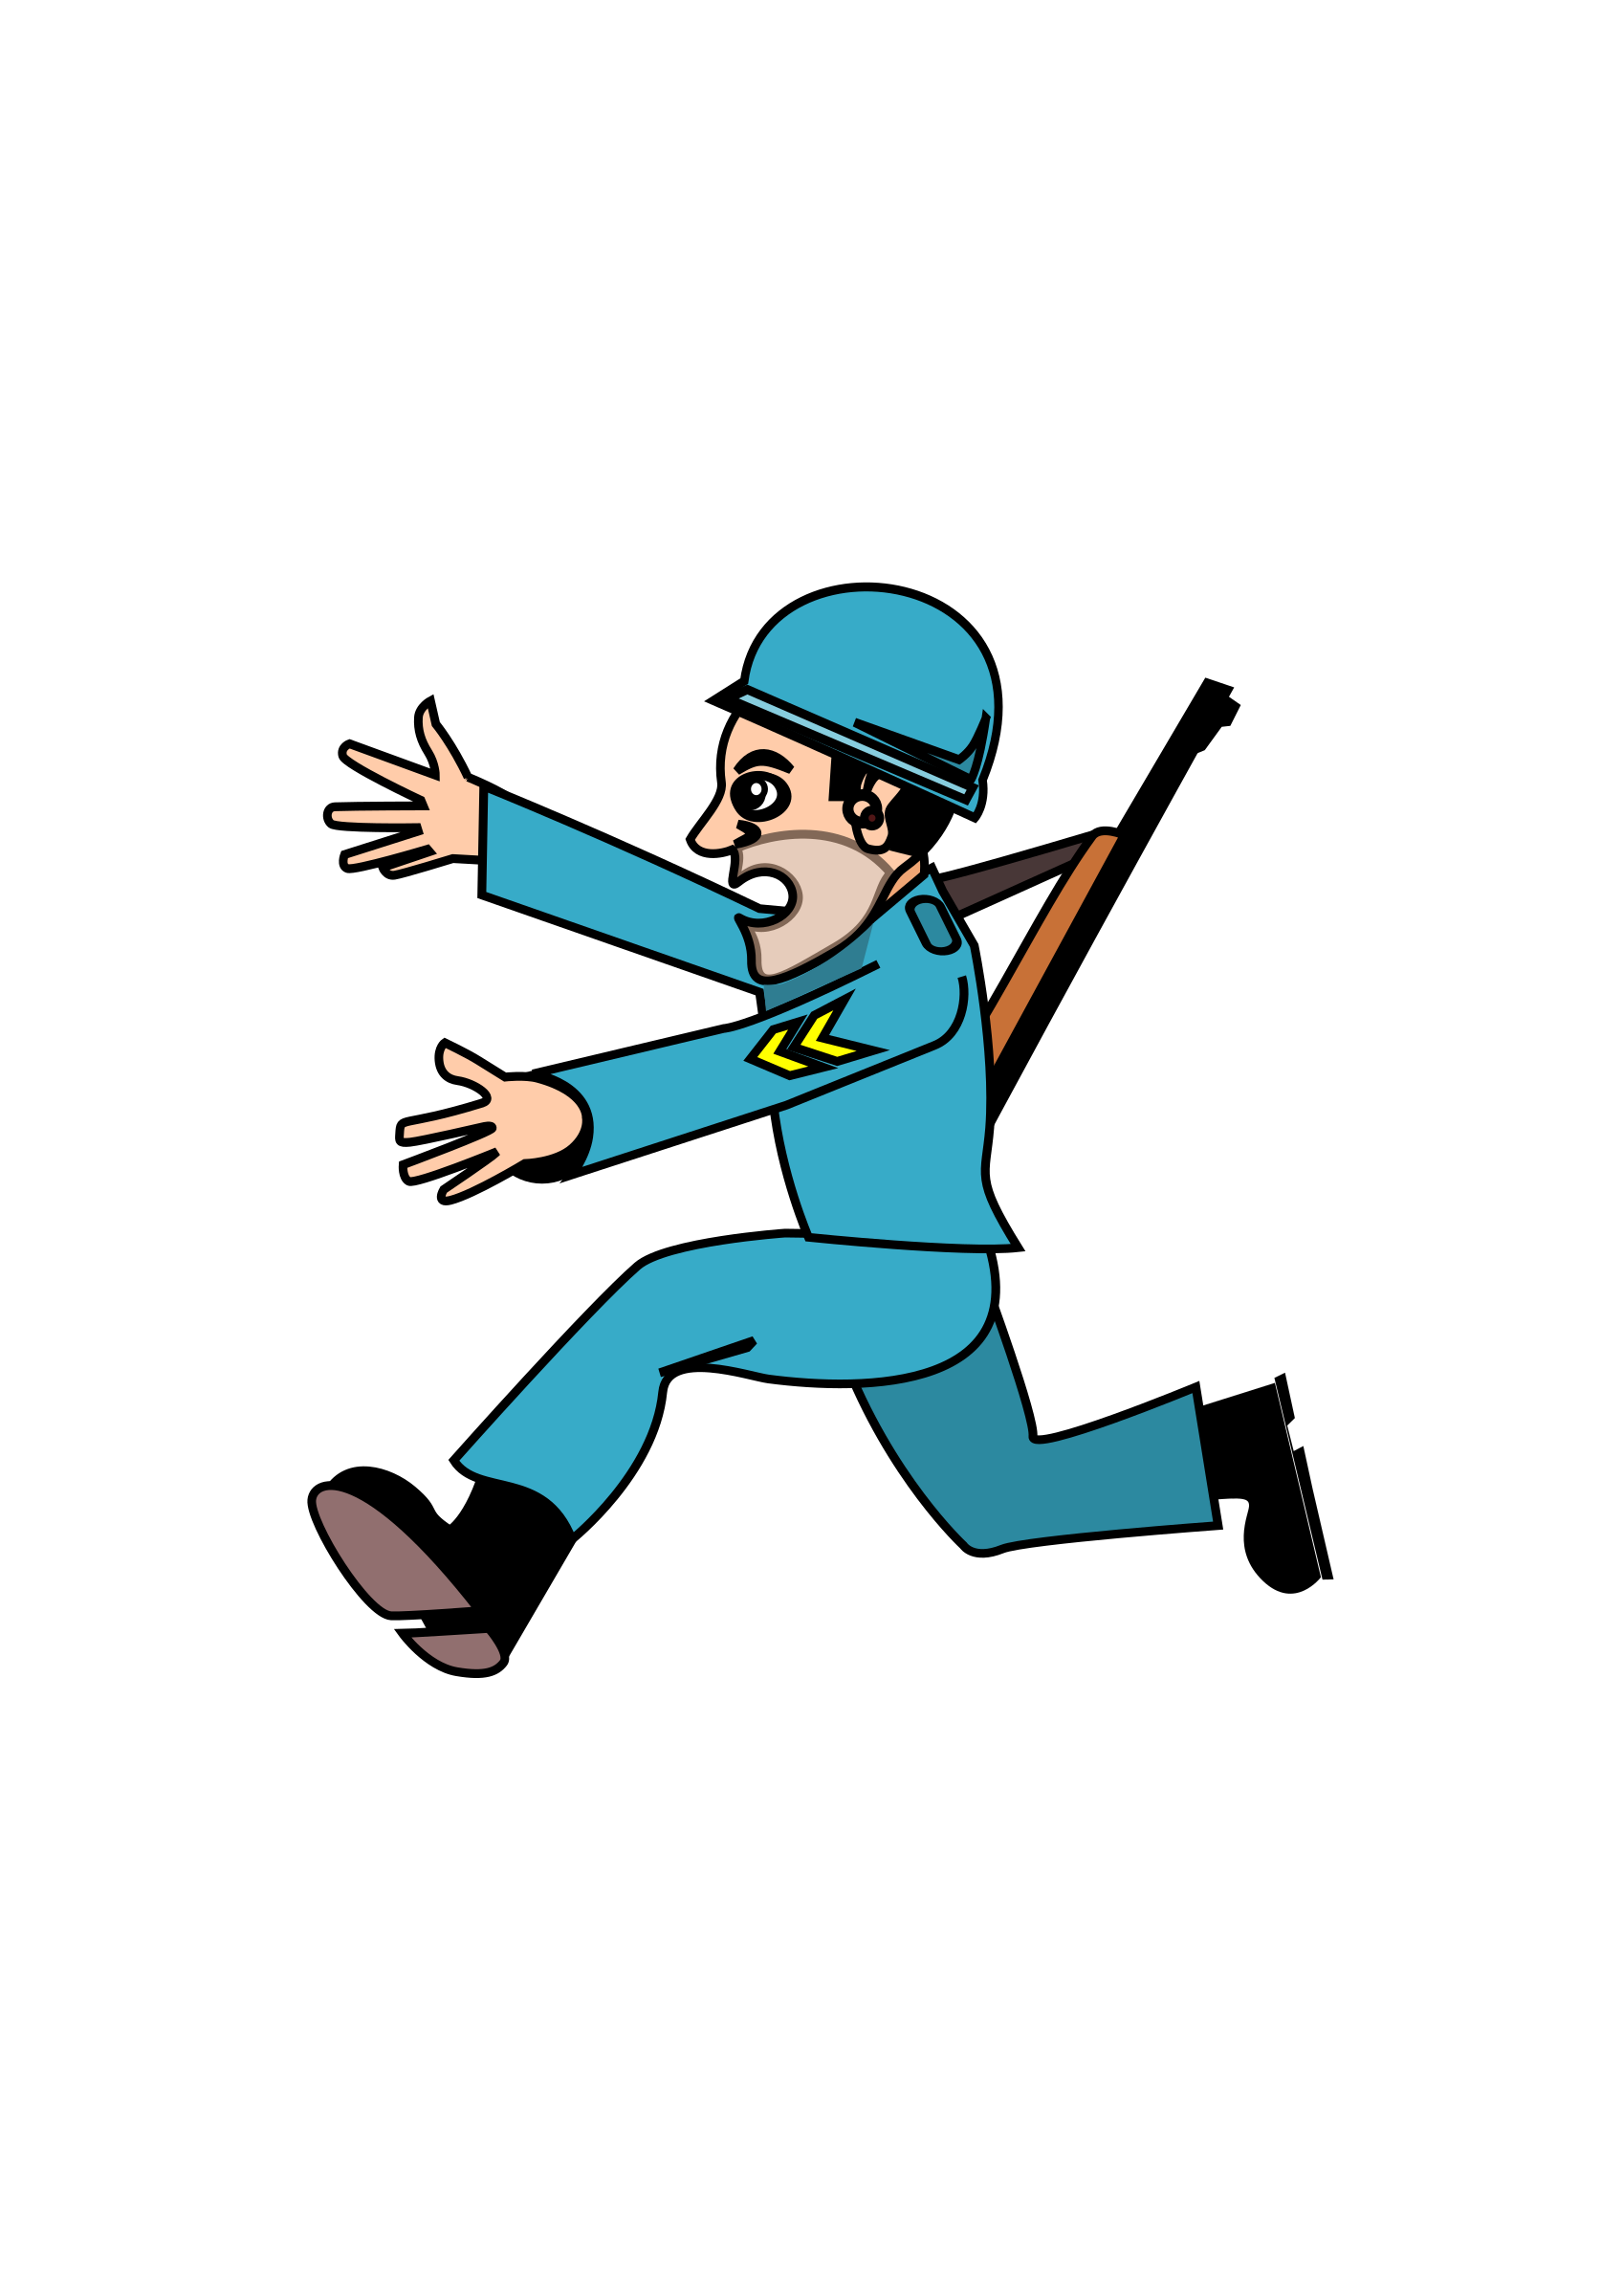 Soldier clipart soldier canadian. Soldierblue big image png